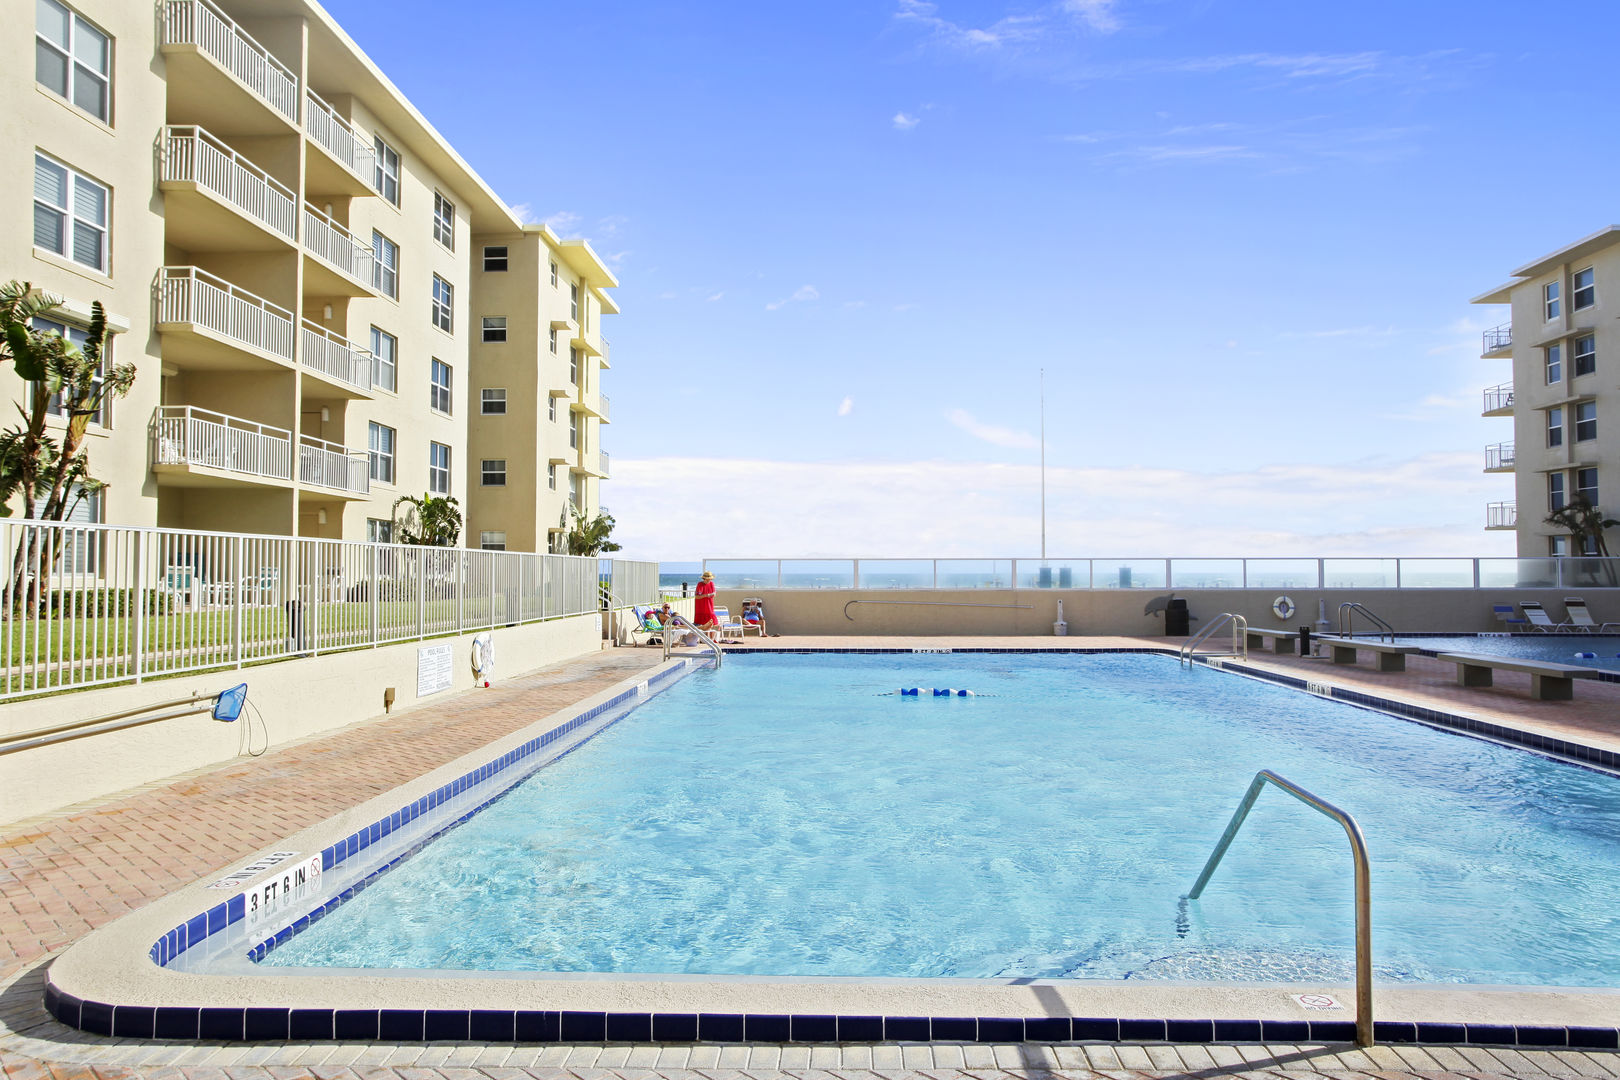 1 bedroom condo rental in New Smyrna Beach with pool